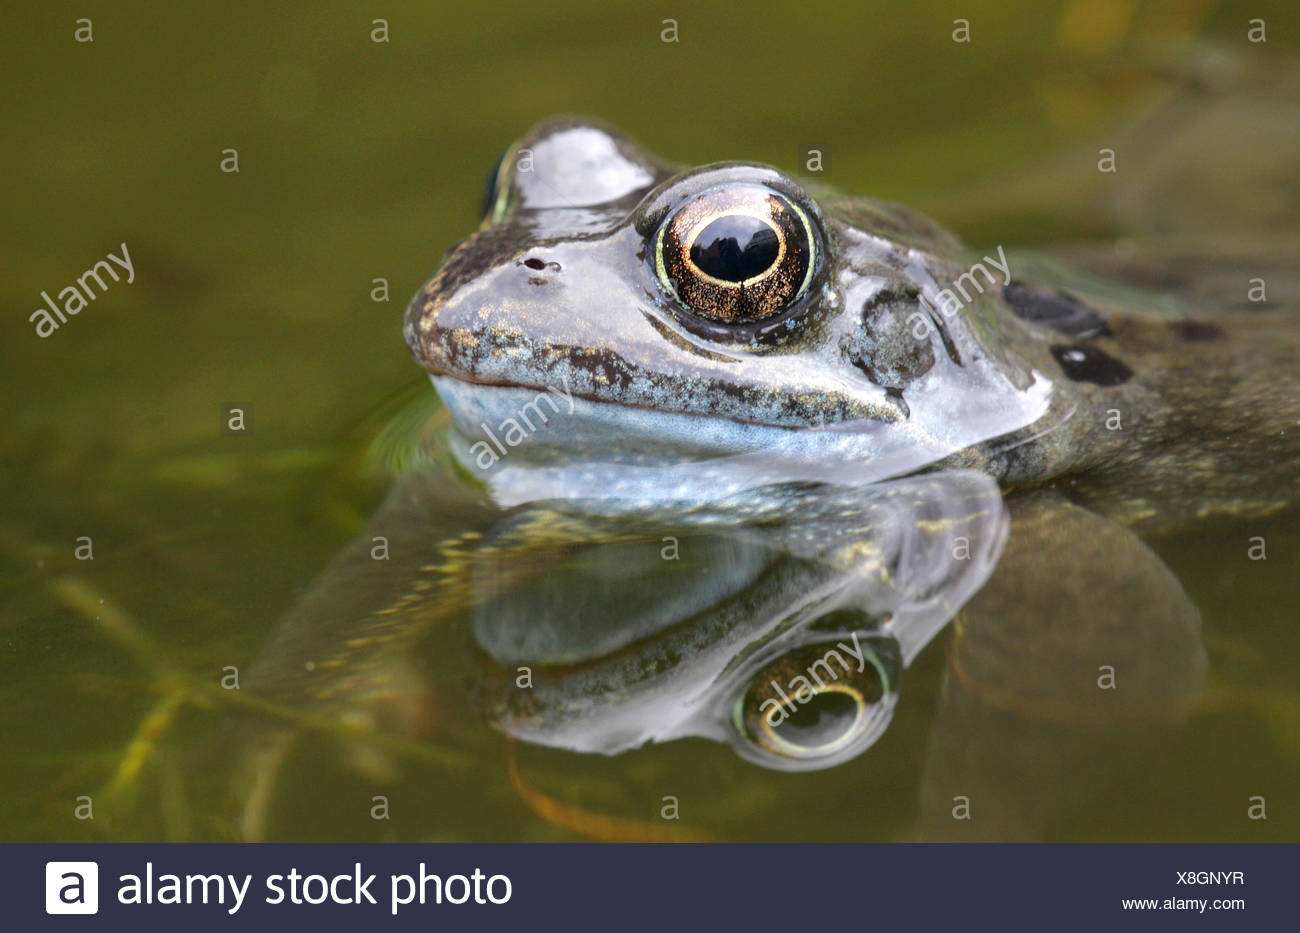 Common Frog - Rana temporaria Stock Photo